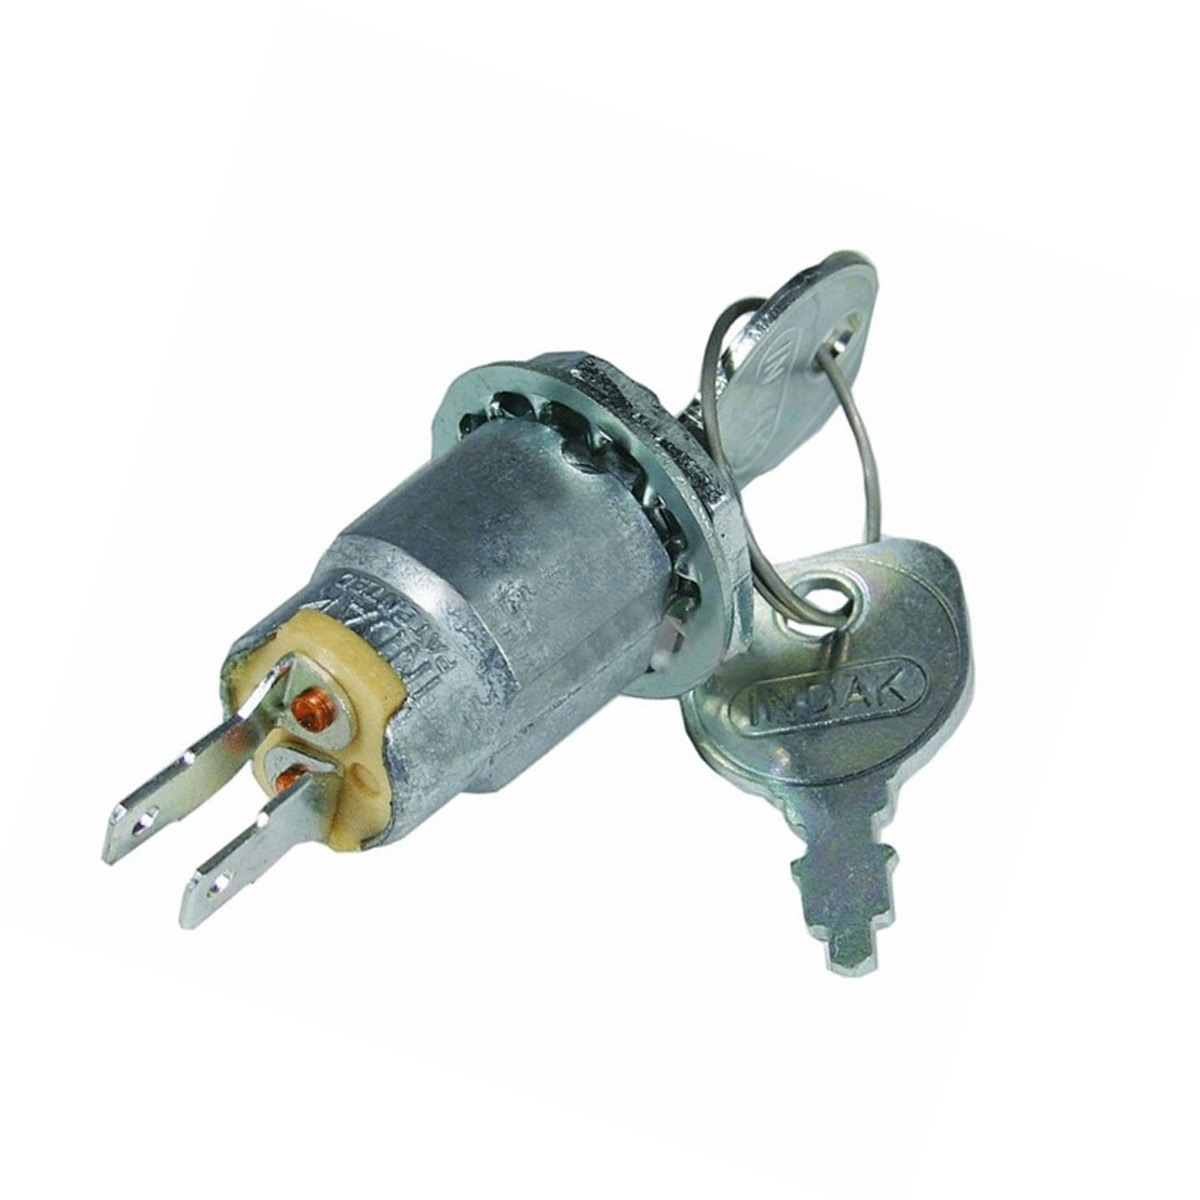 Ferris Switch-Ignition (Complete) 5103148   Power Mower Sales